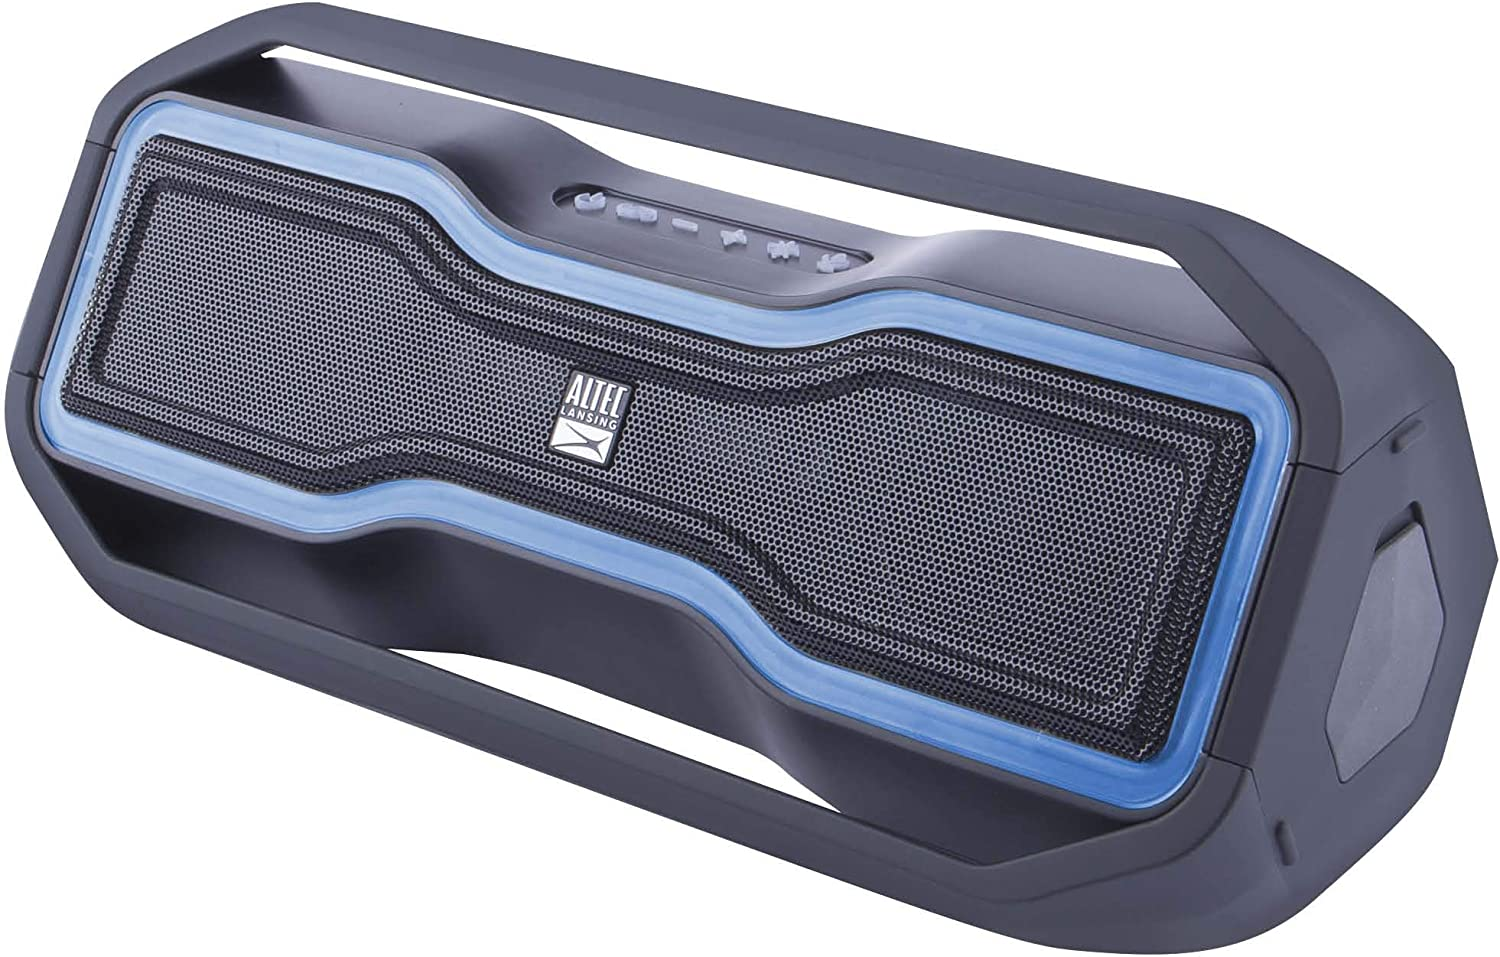 Altec Lansing RockBox - Waterproof, Wireless, Bluetooth Speaker, Floating, IP67, Portable Speaker, Strong Bass, Rich Stereo System, Microphone, 100 ft Range, Lightweight, 12-Hour Battery, LED Lights